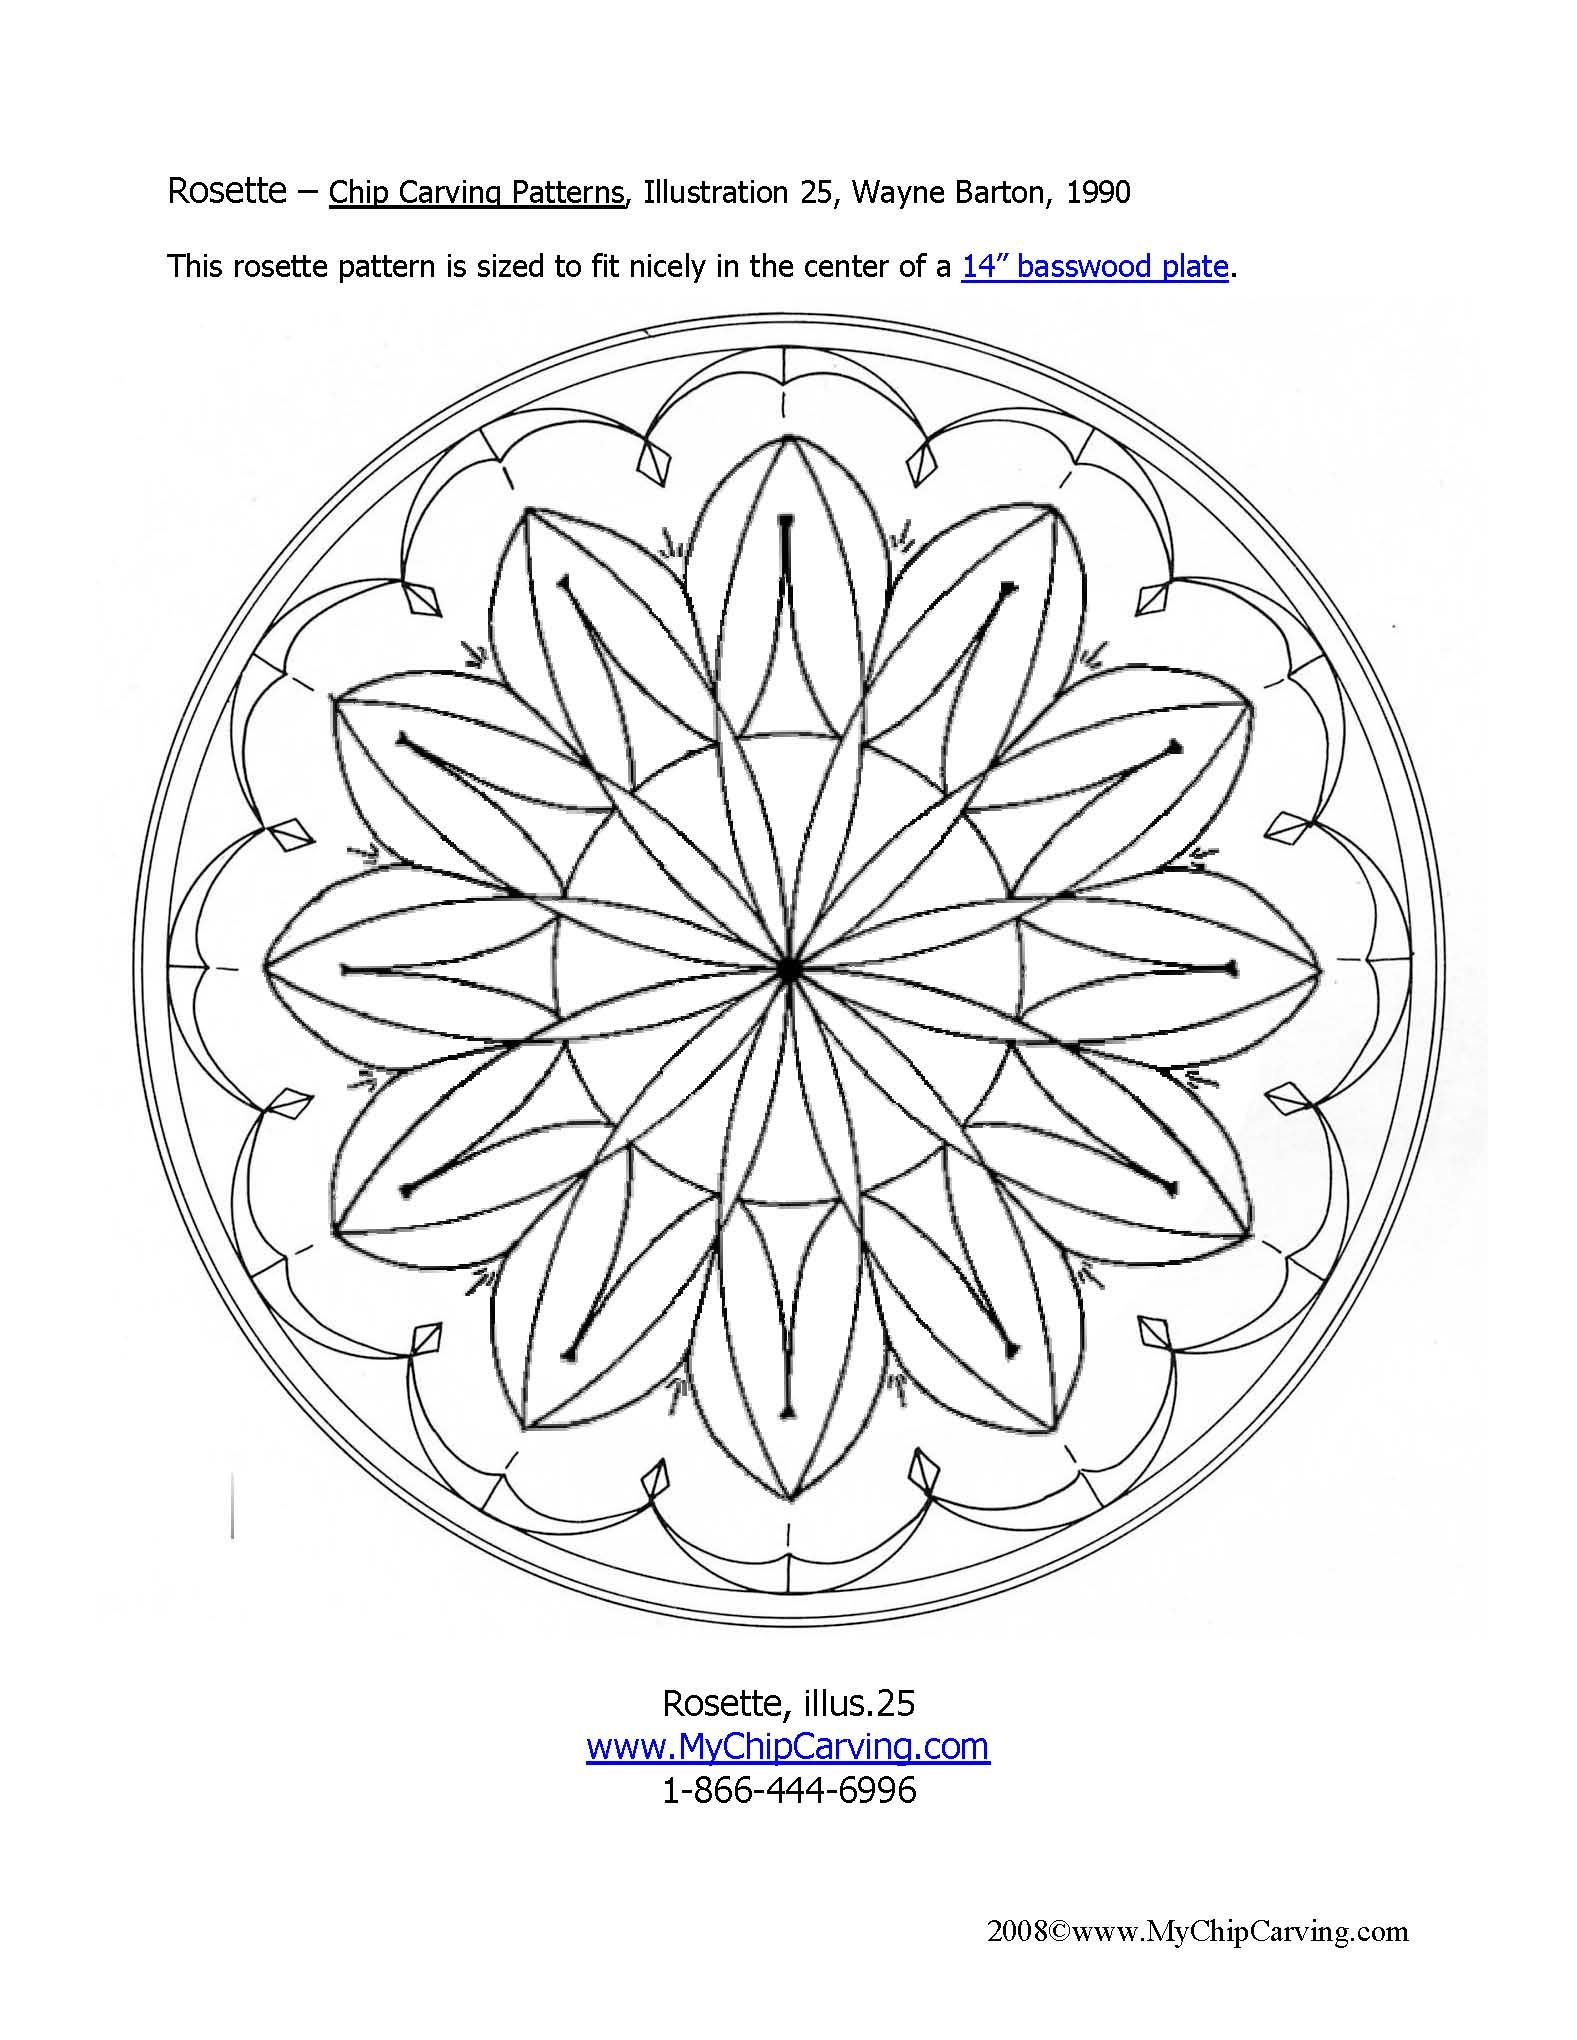 Chip carving patterns google search chip carving